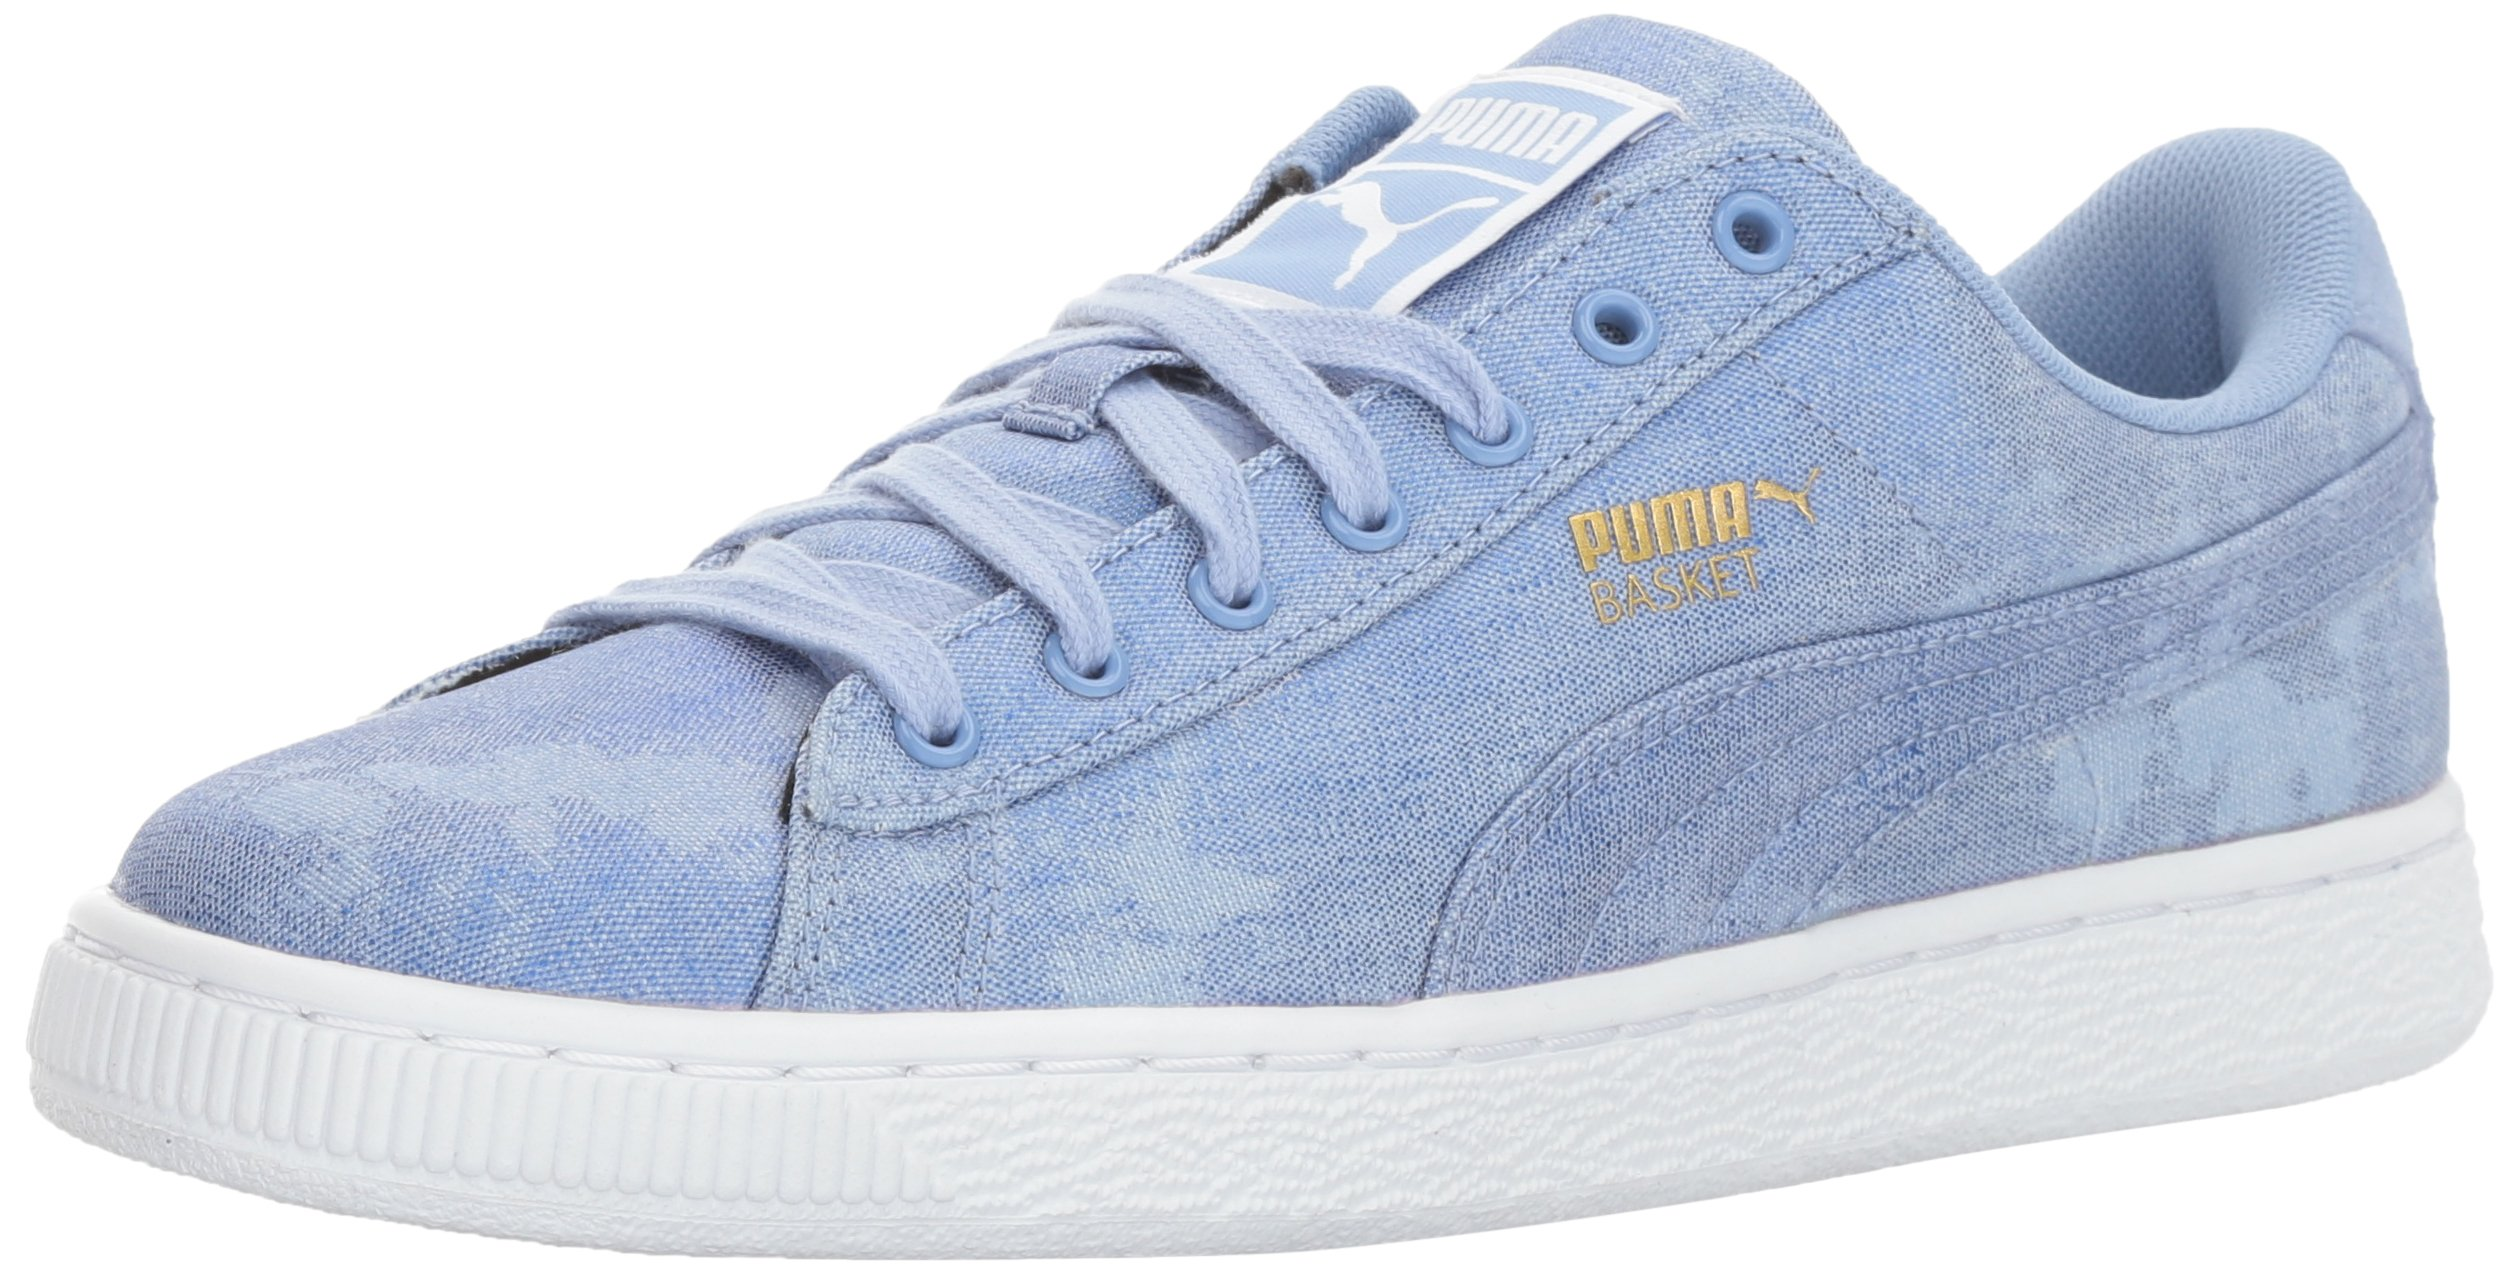 PUMA Women's Basket Denim WN's Field Hockey Shoe, Lavendar Lustre, 8.5 M US by PUMA